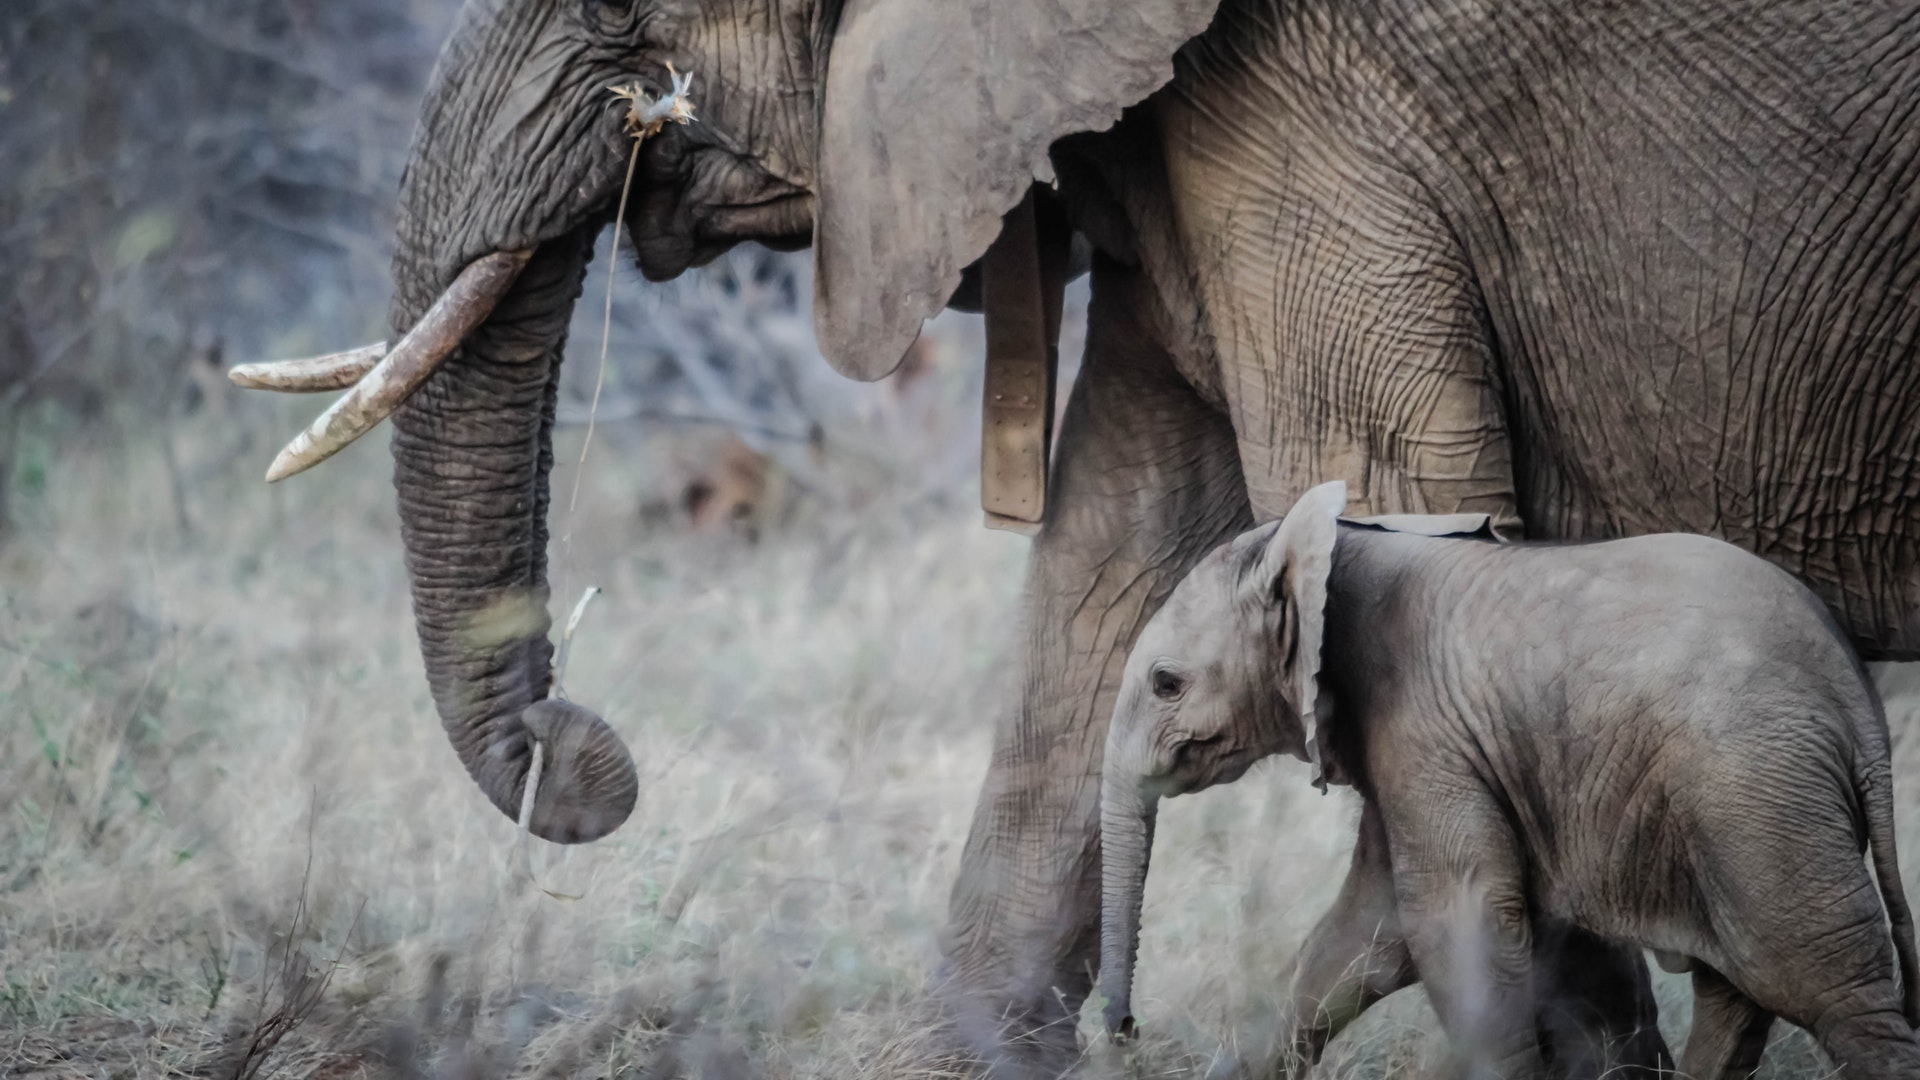 Vibrations give new way to track elephants